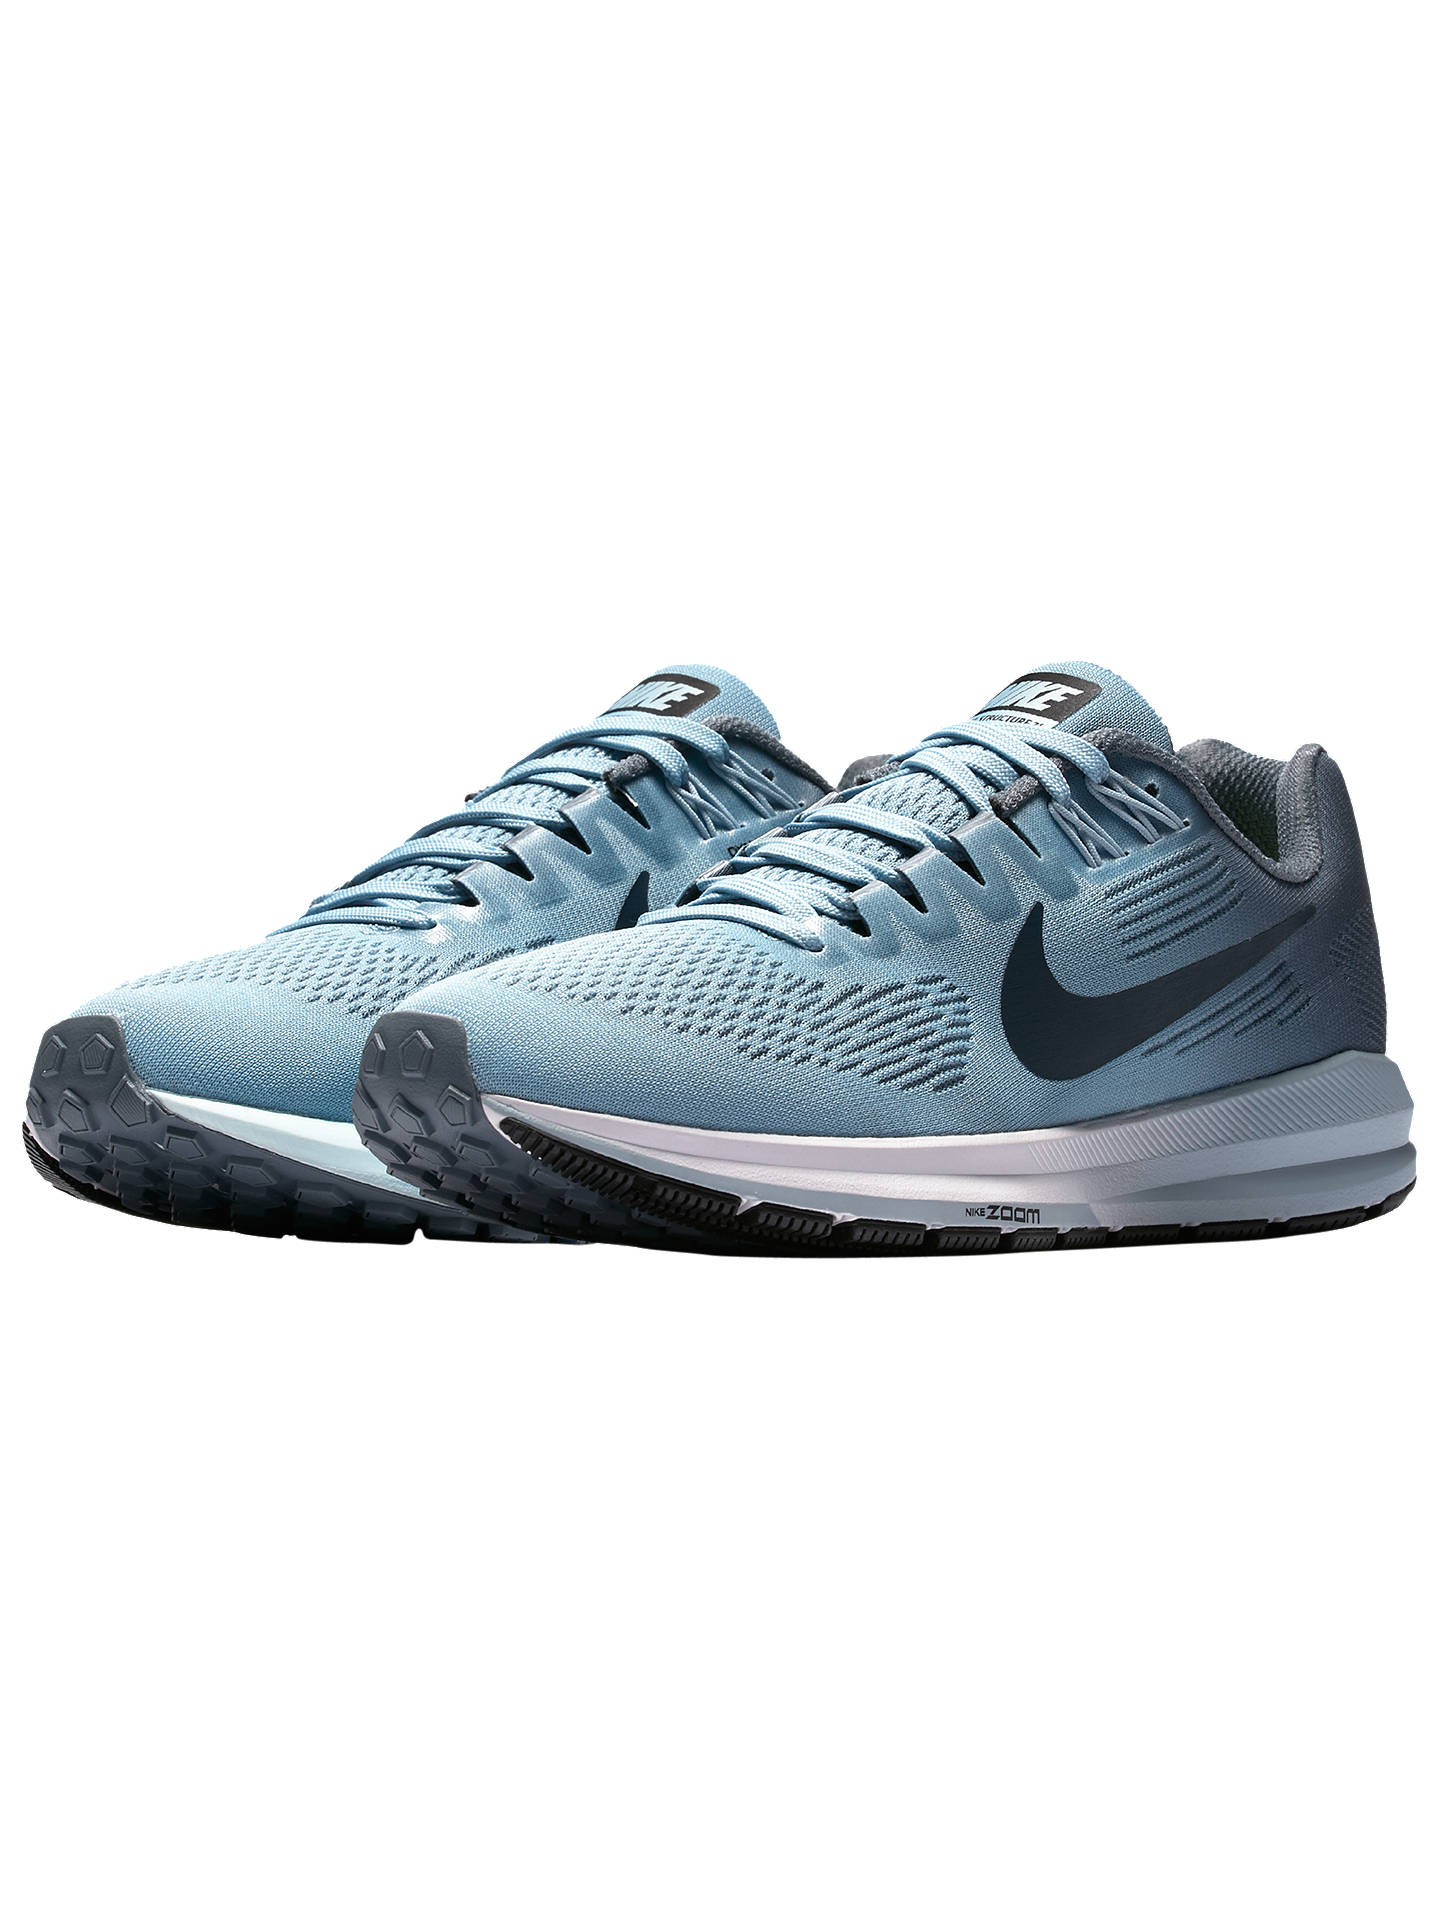 BuyNike Air Zoom Structure 21 Womens Running Shoes, ...